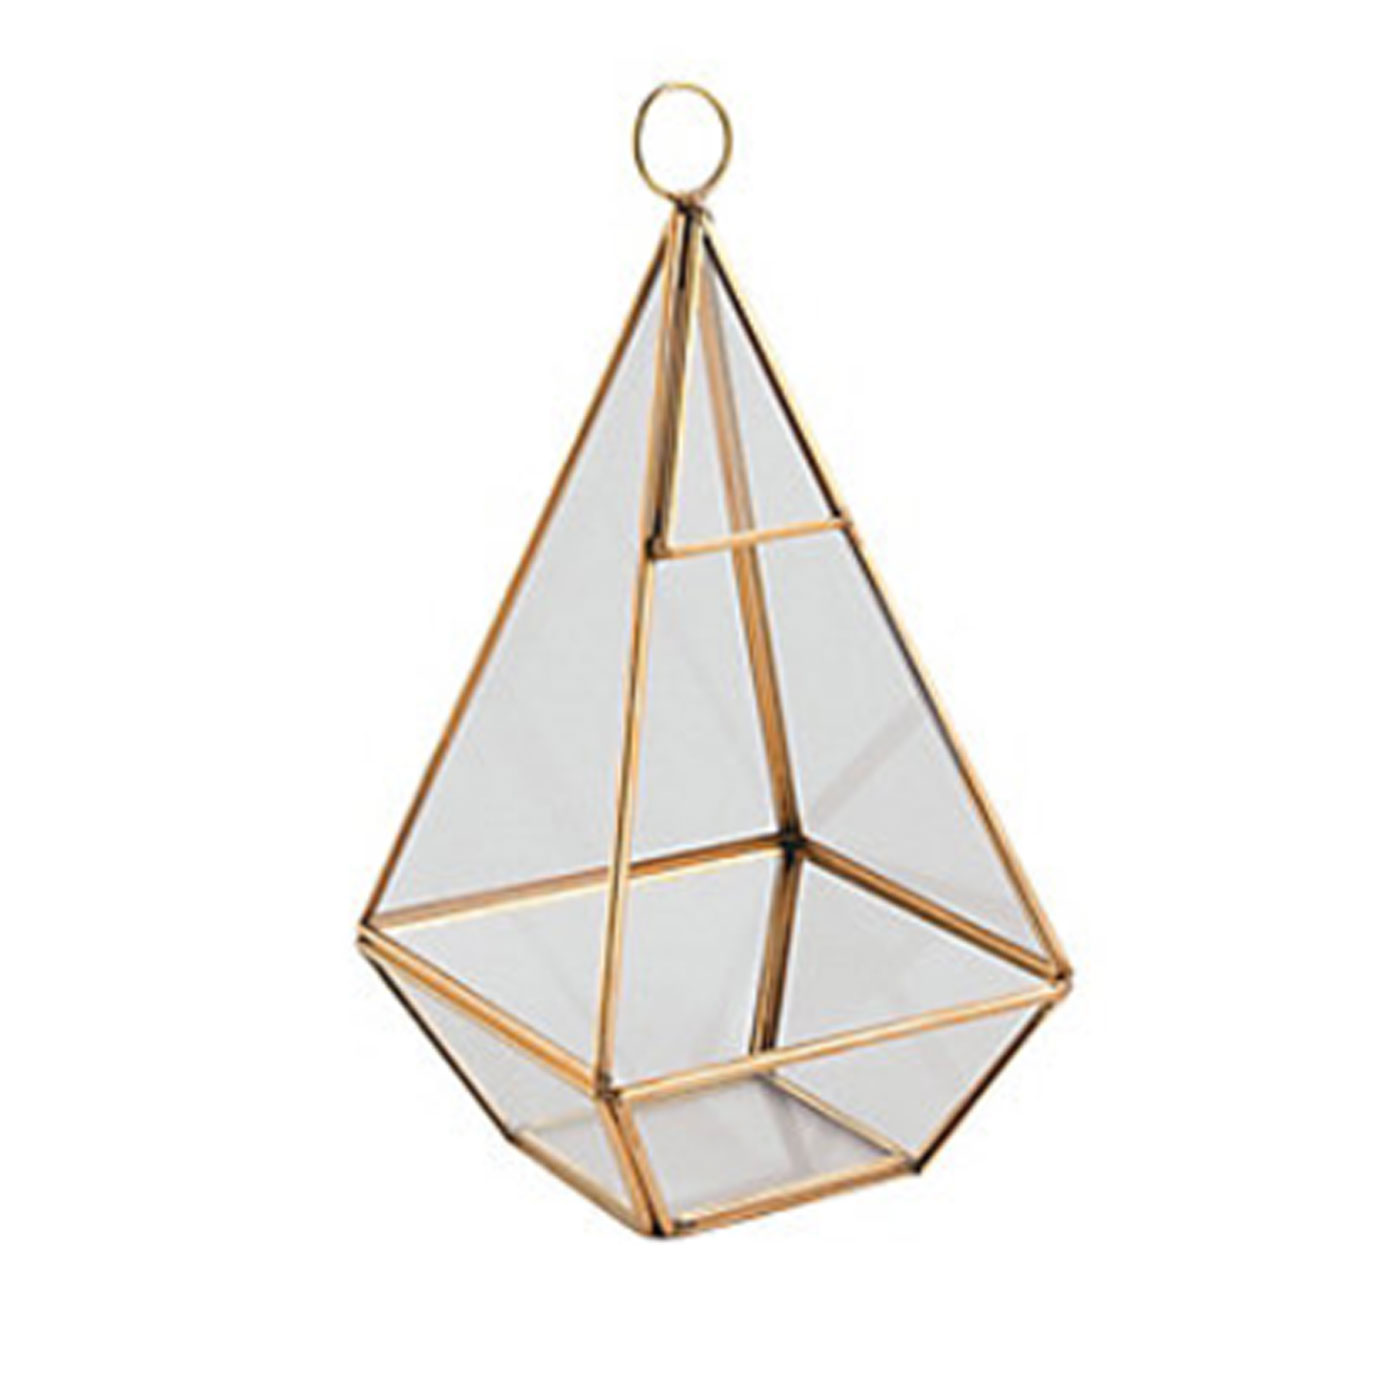 hanging triangle - gold terrarium   Quantity: 9  Price: $8.50